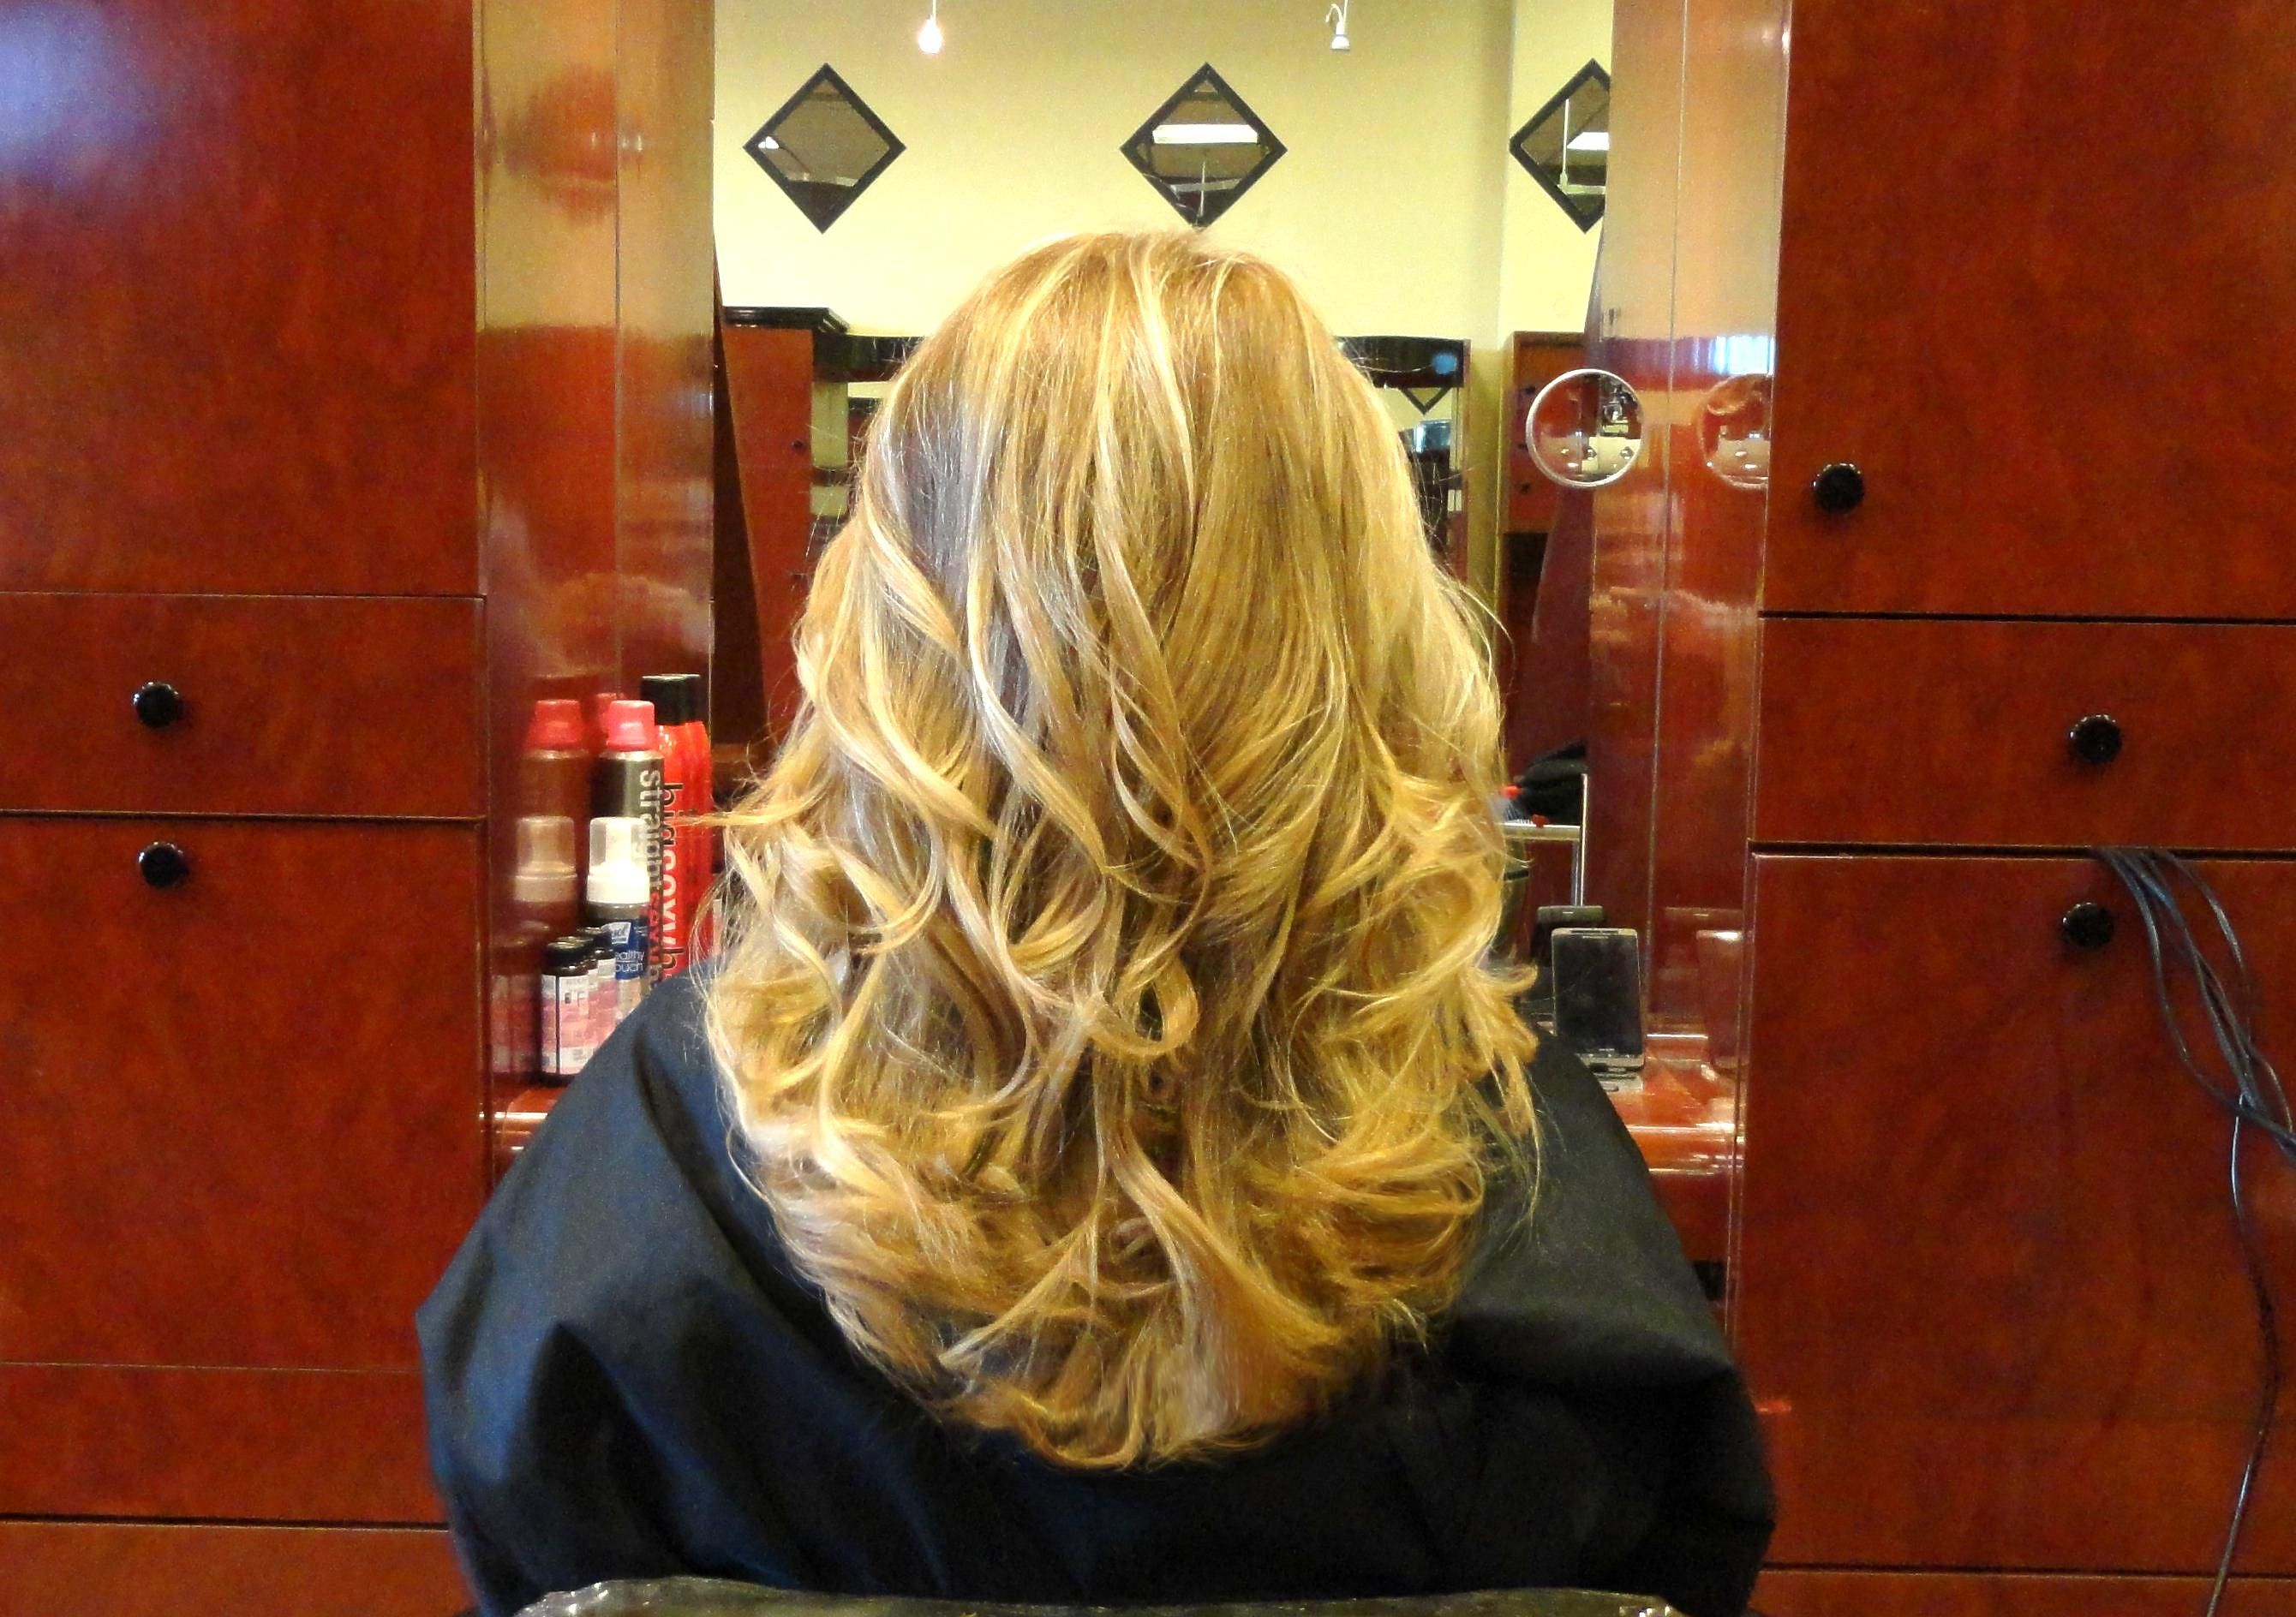 CLICK ON PCTURE & visit our #website - #Hair by #AlireHairDesign - We #offering #women's latest ...